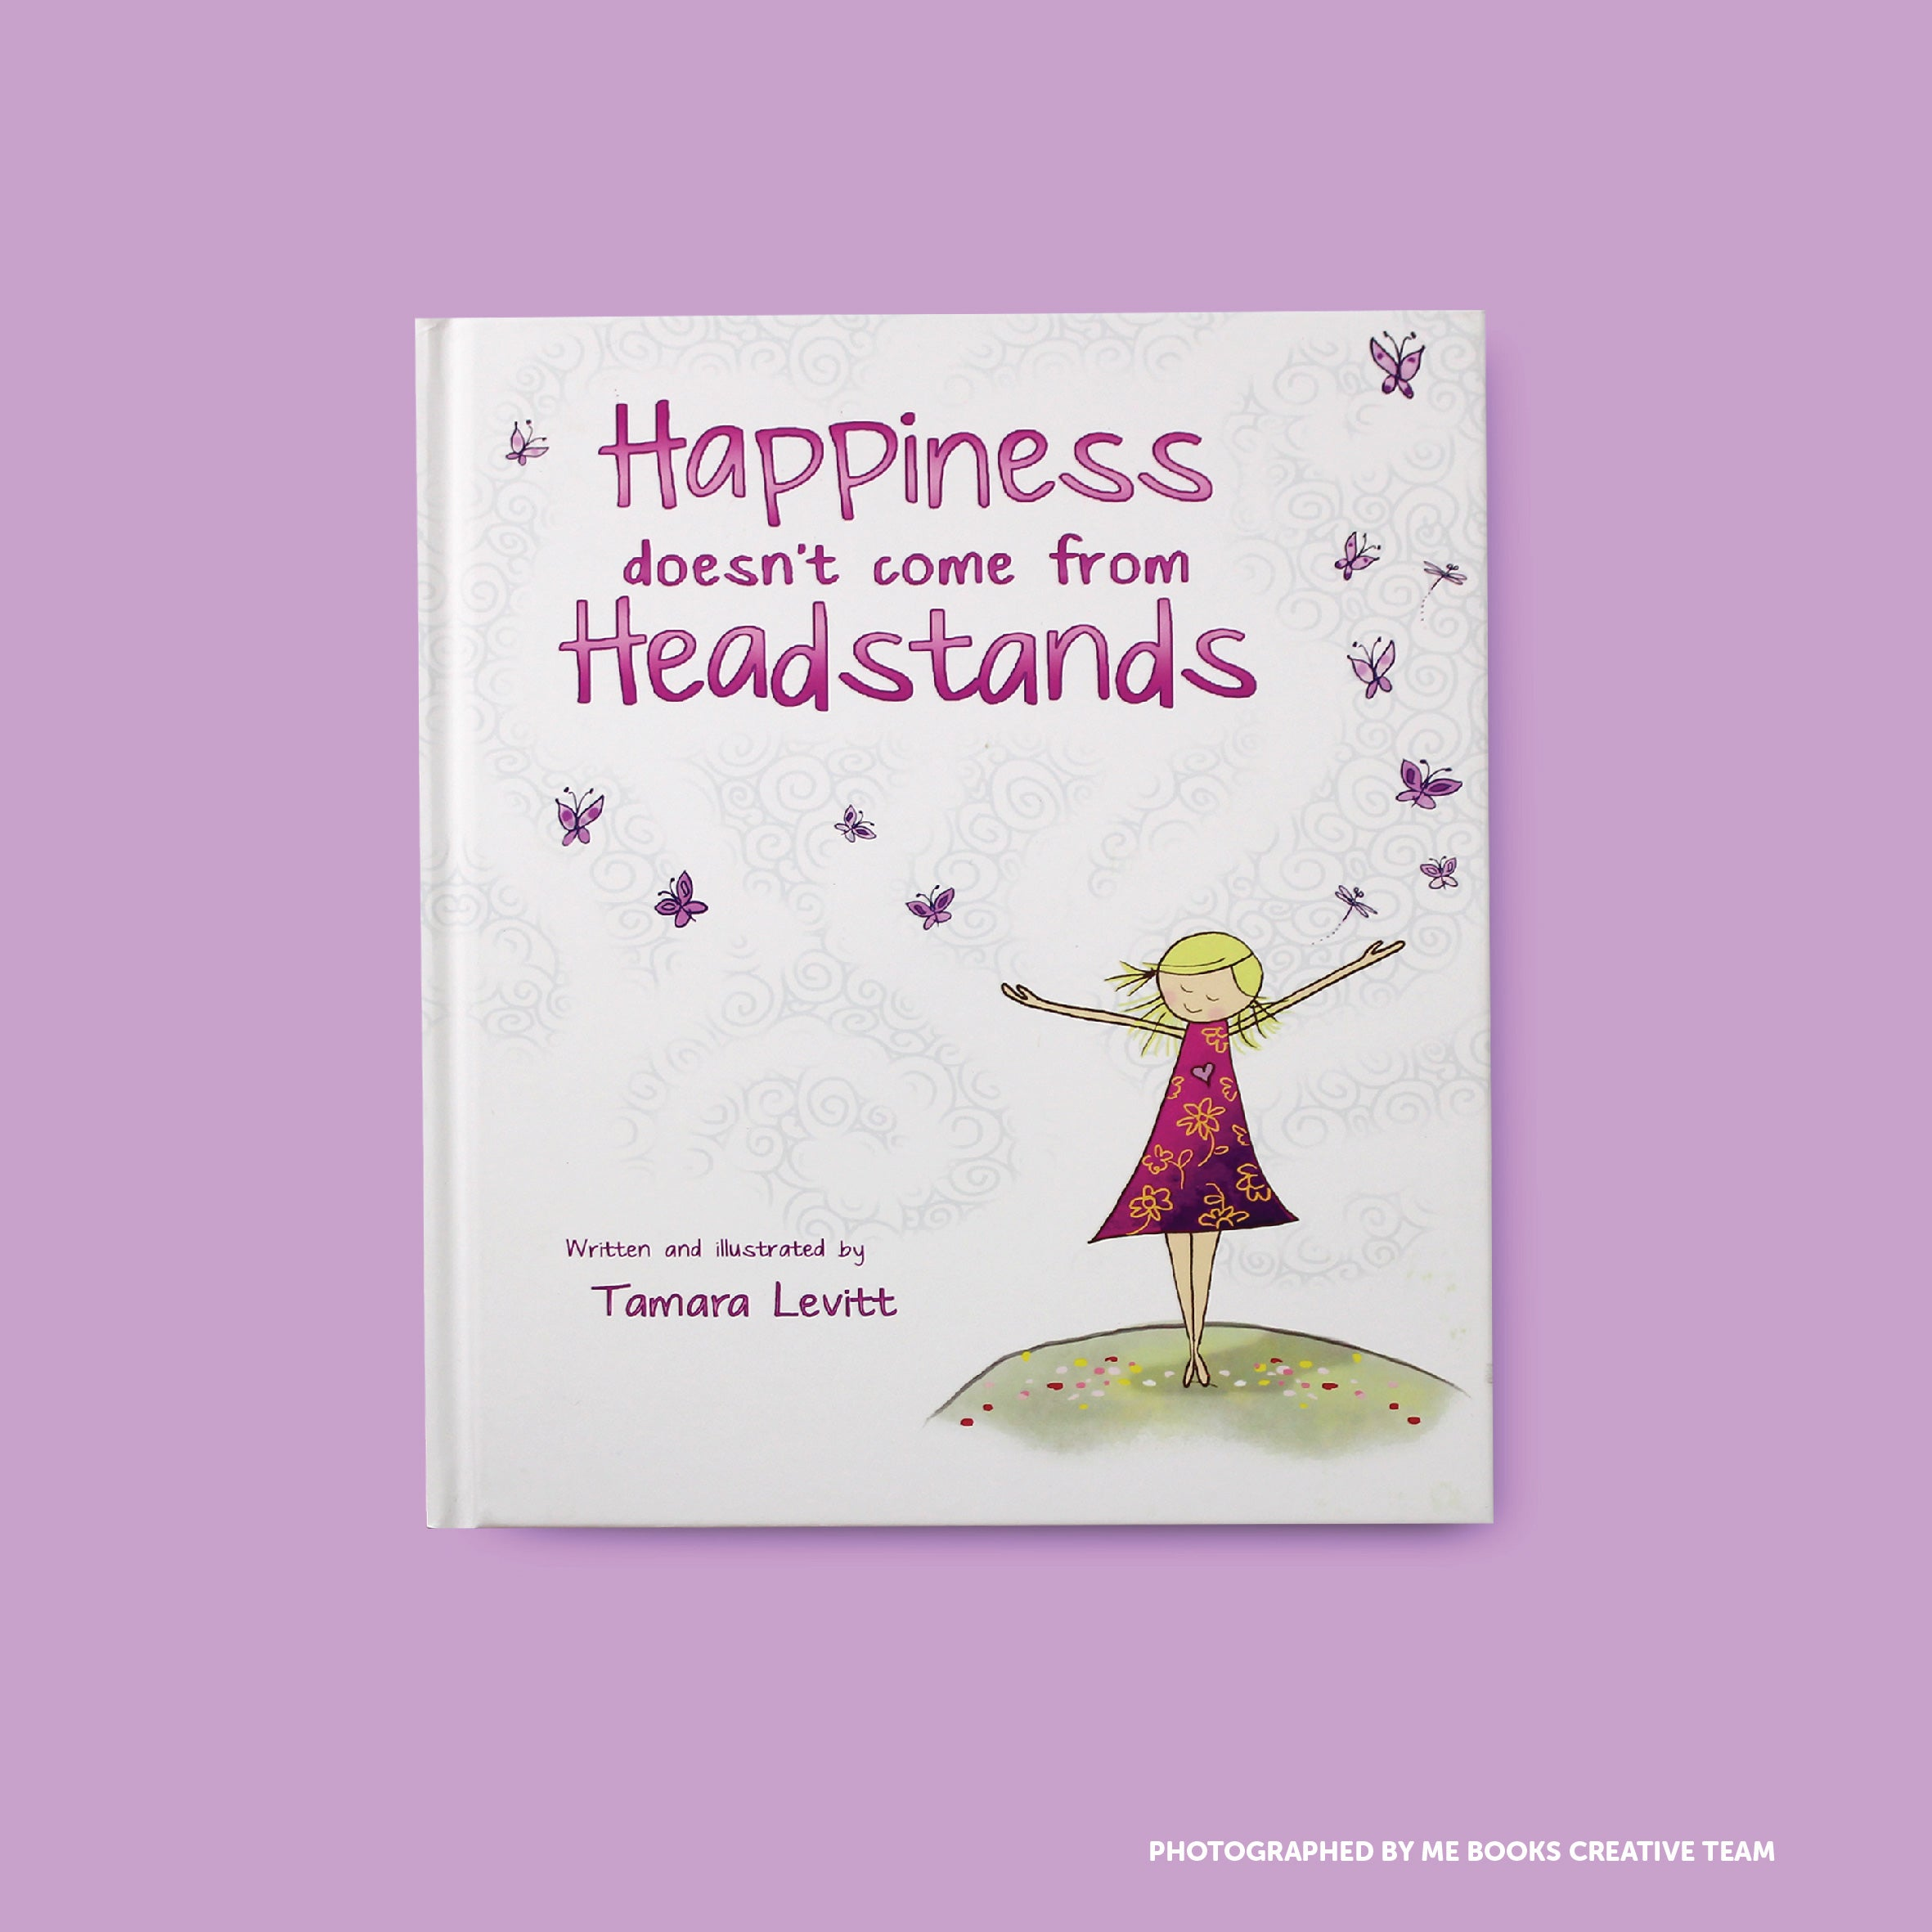 Happiness Doesn't Come from Headstands - Me Books Asia Store